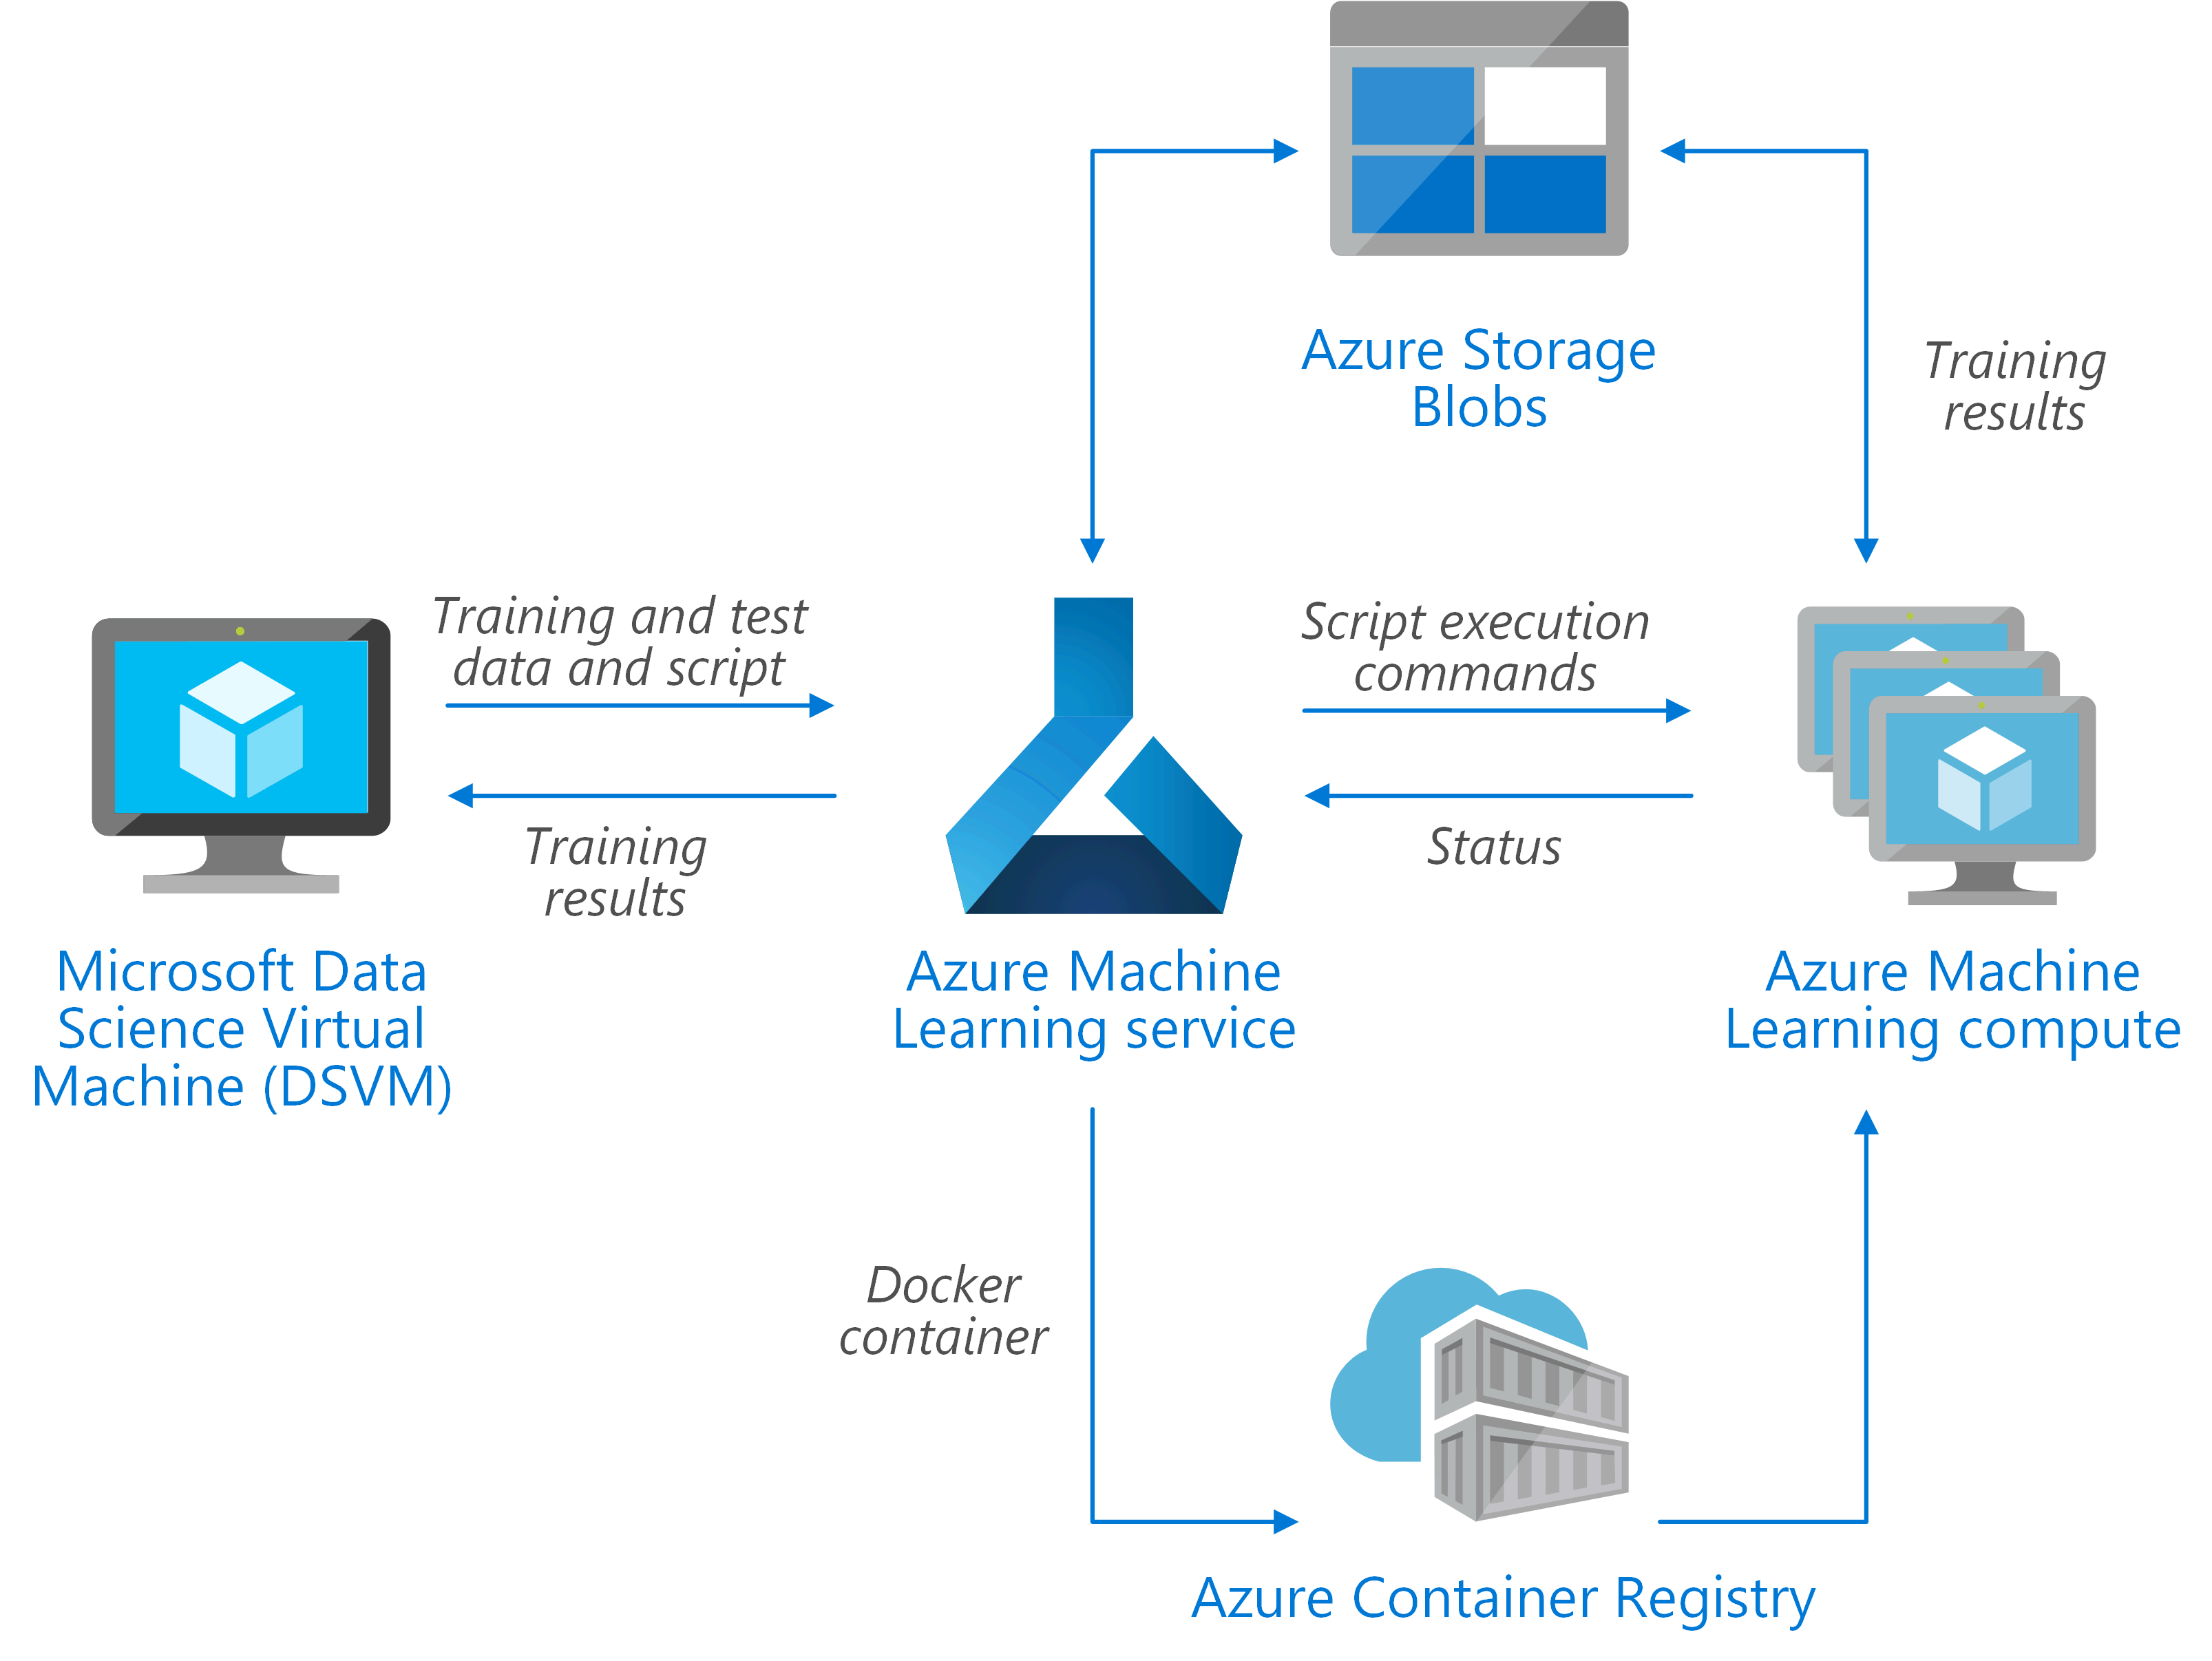 Training of Python scikit-learn and deep learning models on Azure